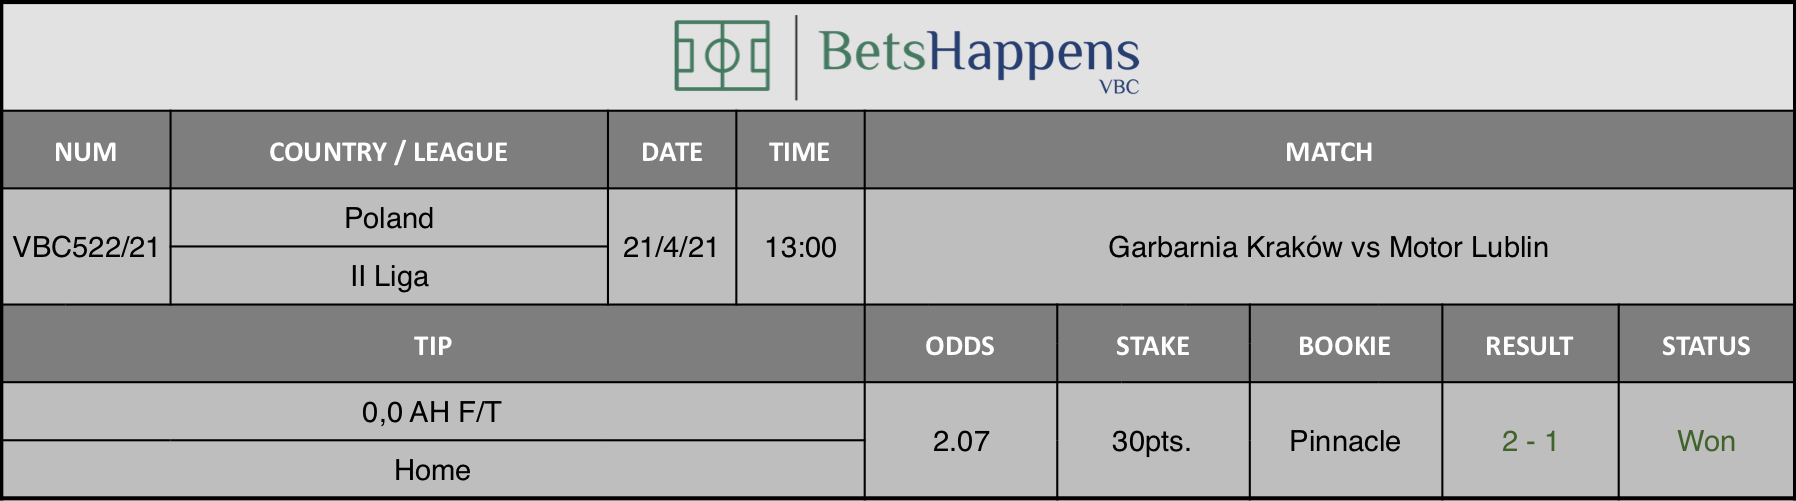 Results of our tip for the Garbarnia Kraków vs Motor Lublin match where 0,0 AH F/T  Home is recommended.